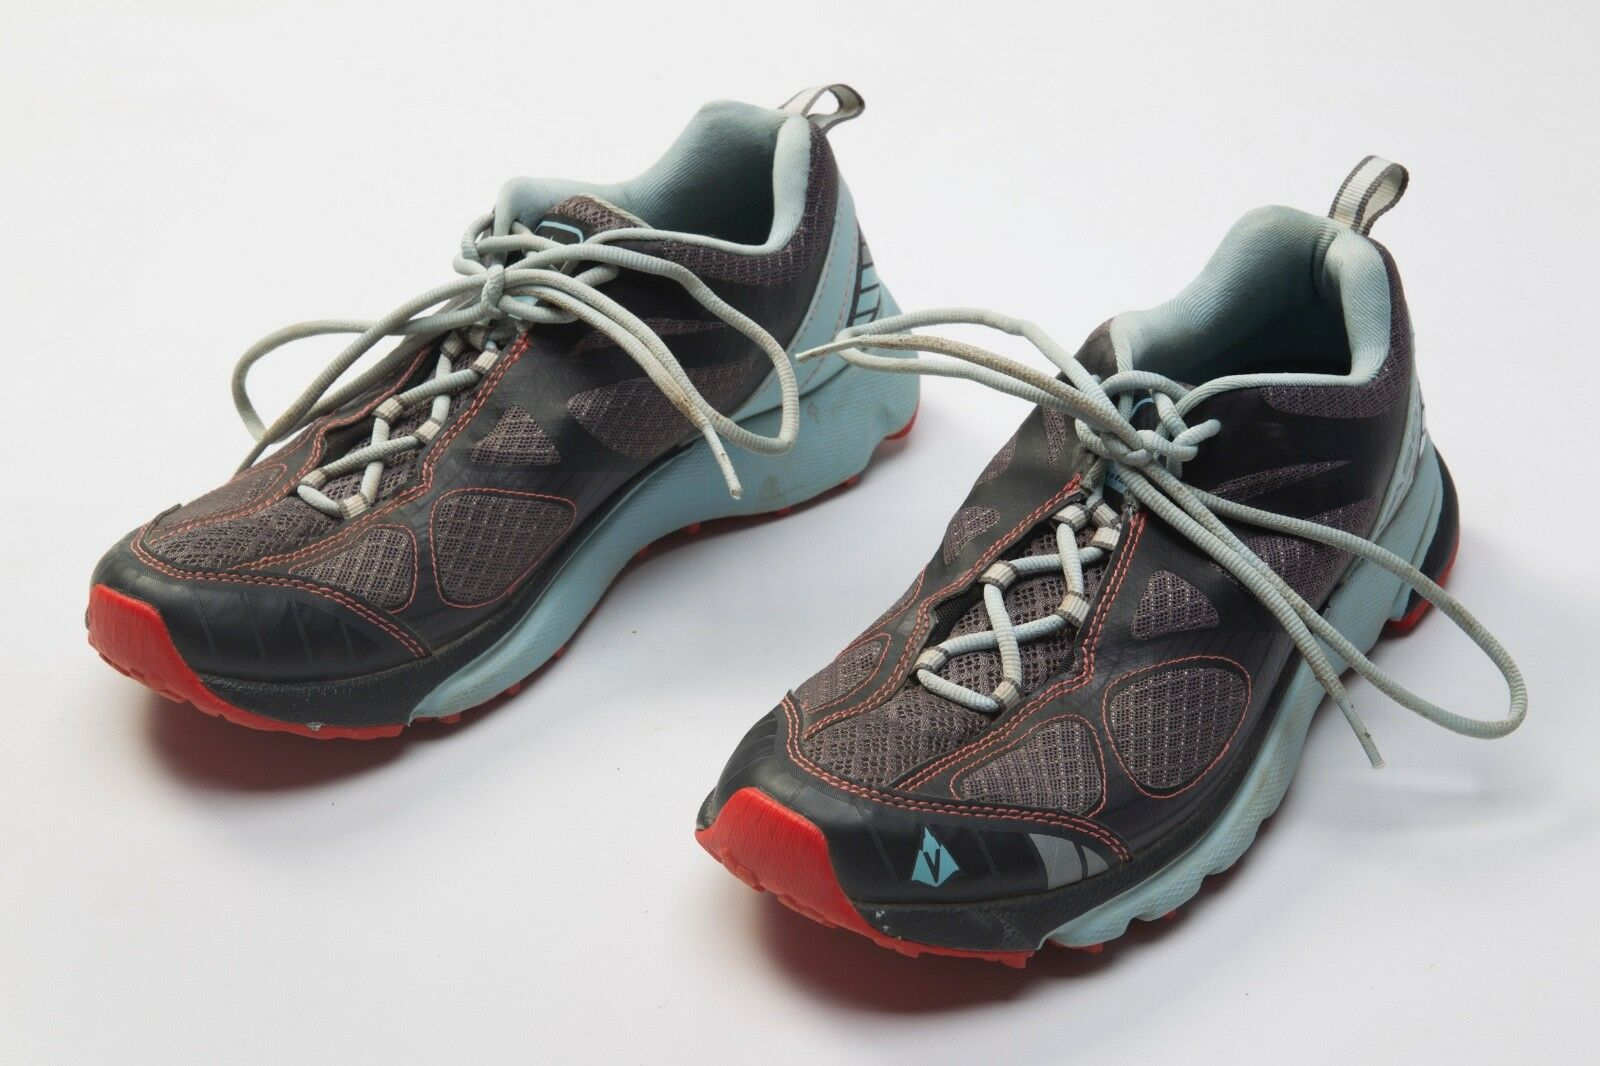 Women's Vasque Constant Velocity Low Hiking Trail Running shoes Size 10 M 10M